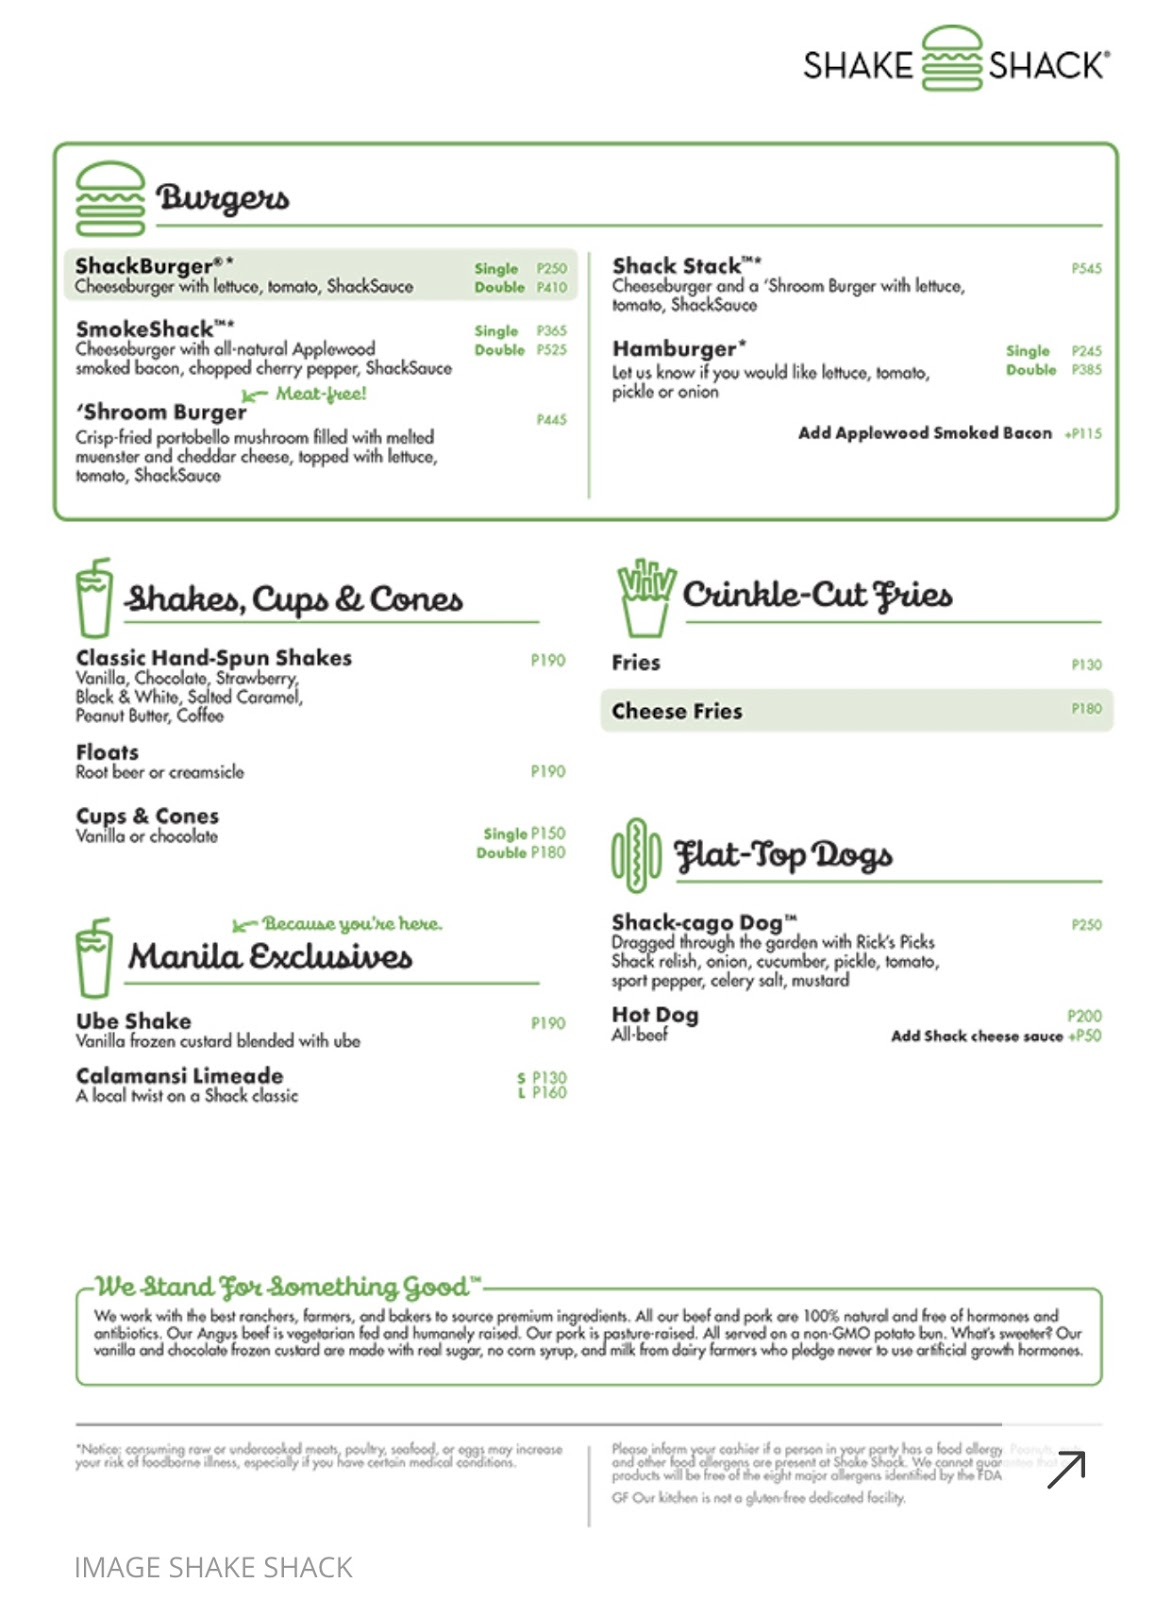 Cheat Sheet to Shake Shack Philippines - What Mary Loves